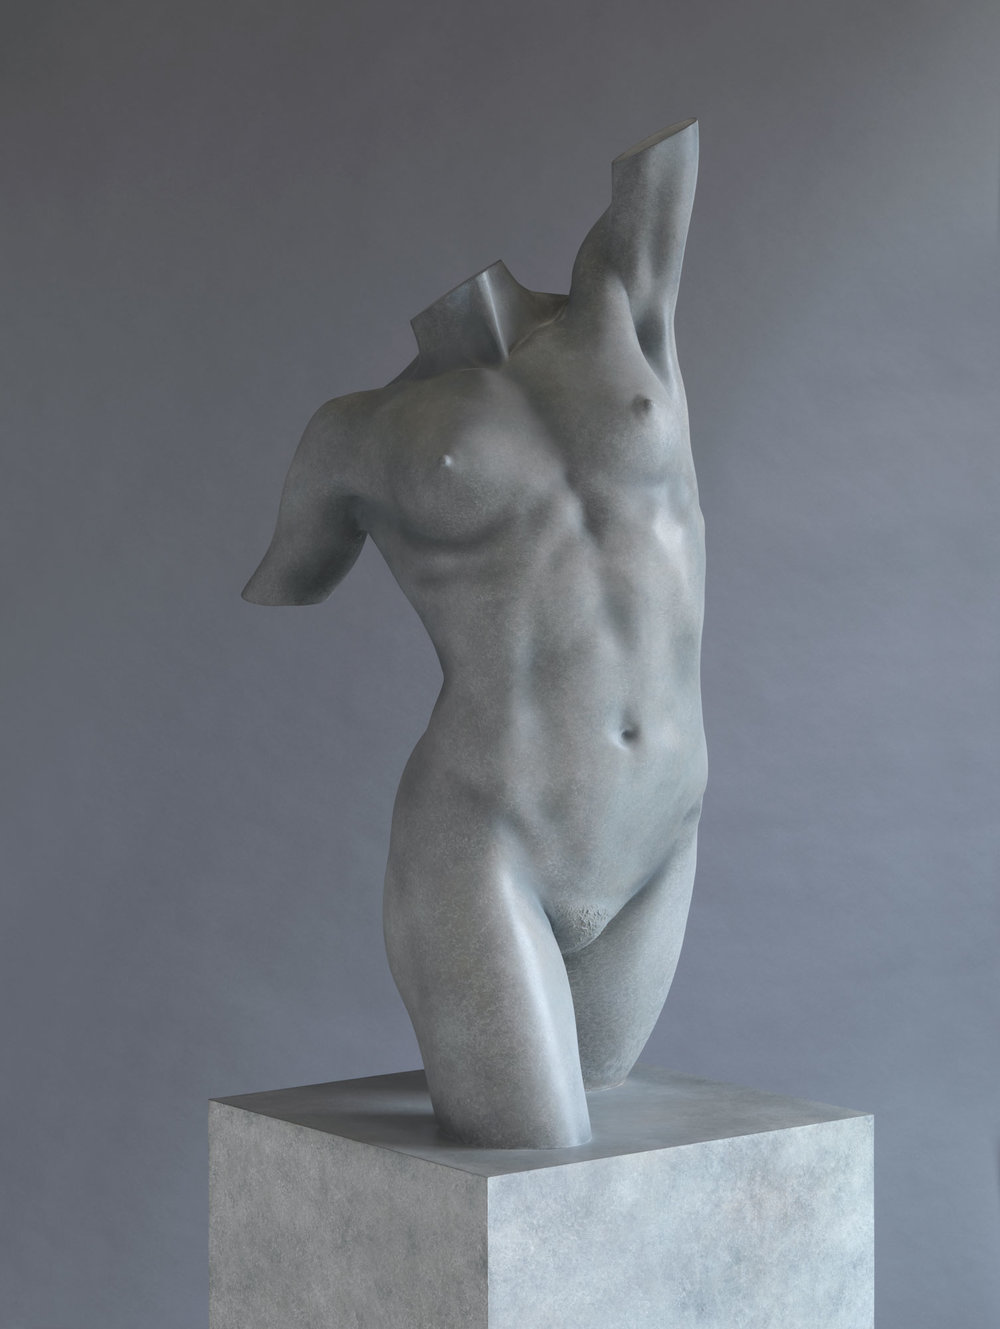 4. Artemis by Nick Bibby, Edition of 9, 80 x 22 x 21 inches (2013 x 56 x 53cm).jpg